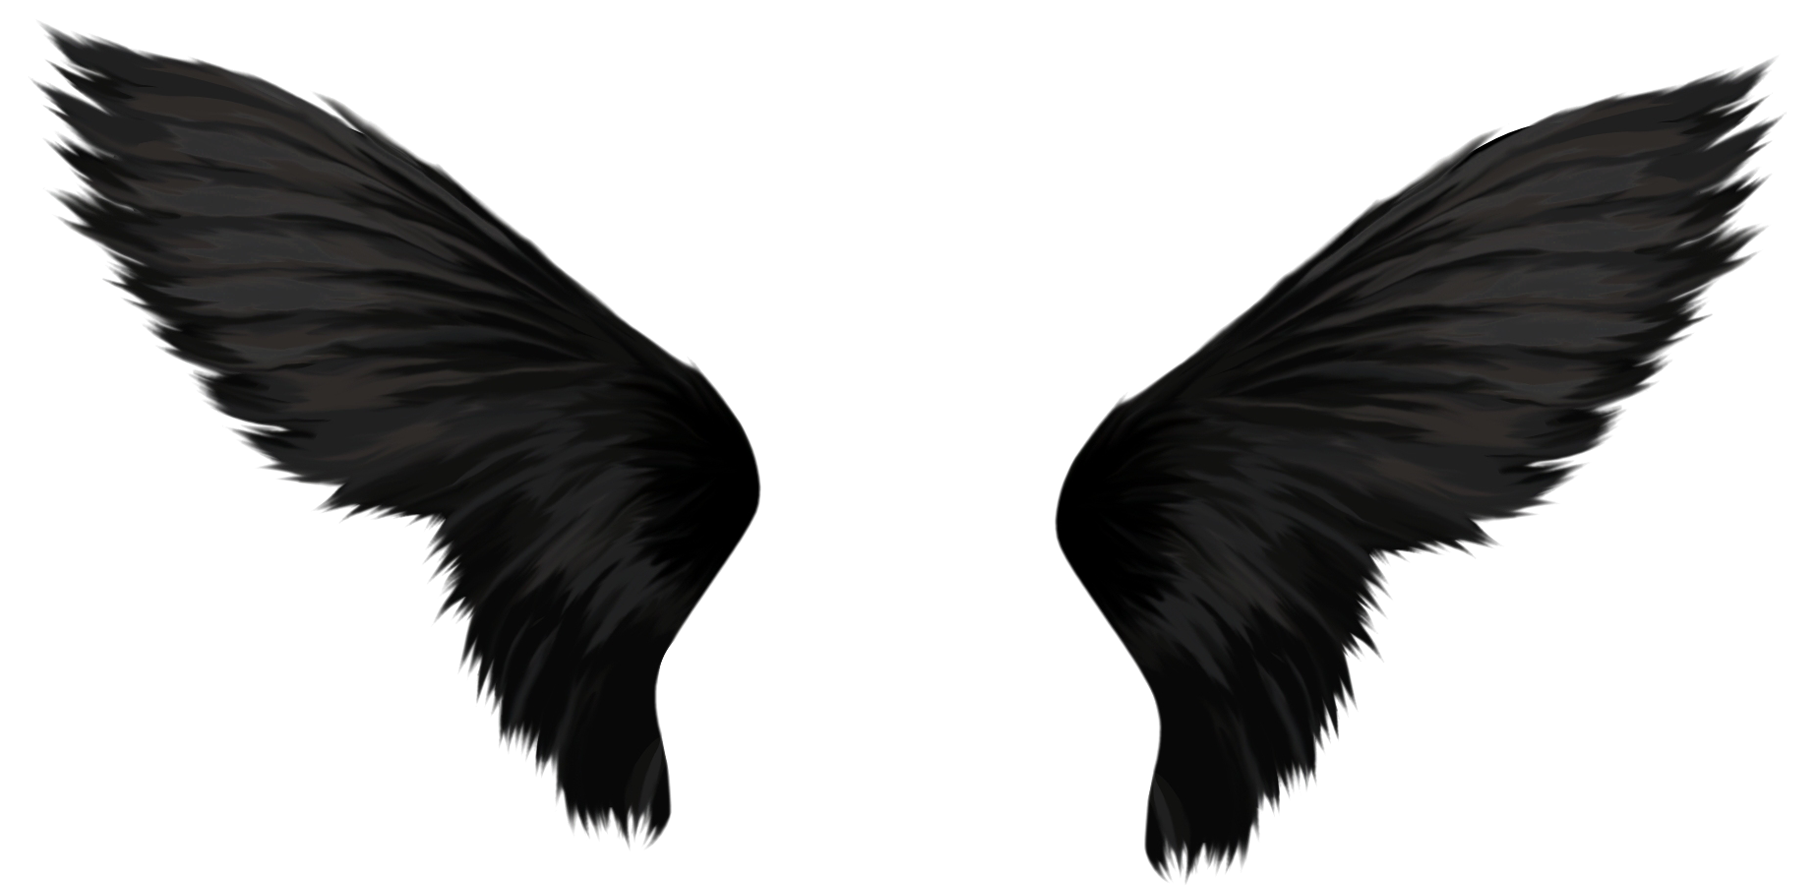 Wings png images free. Wing clipart bird wing